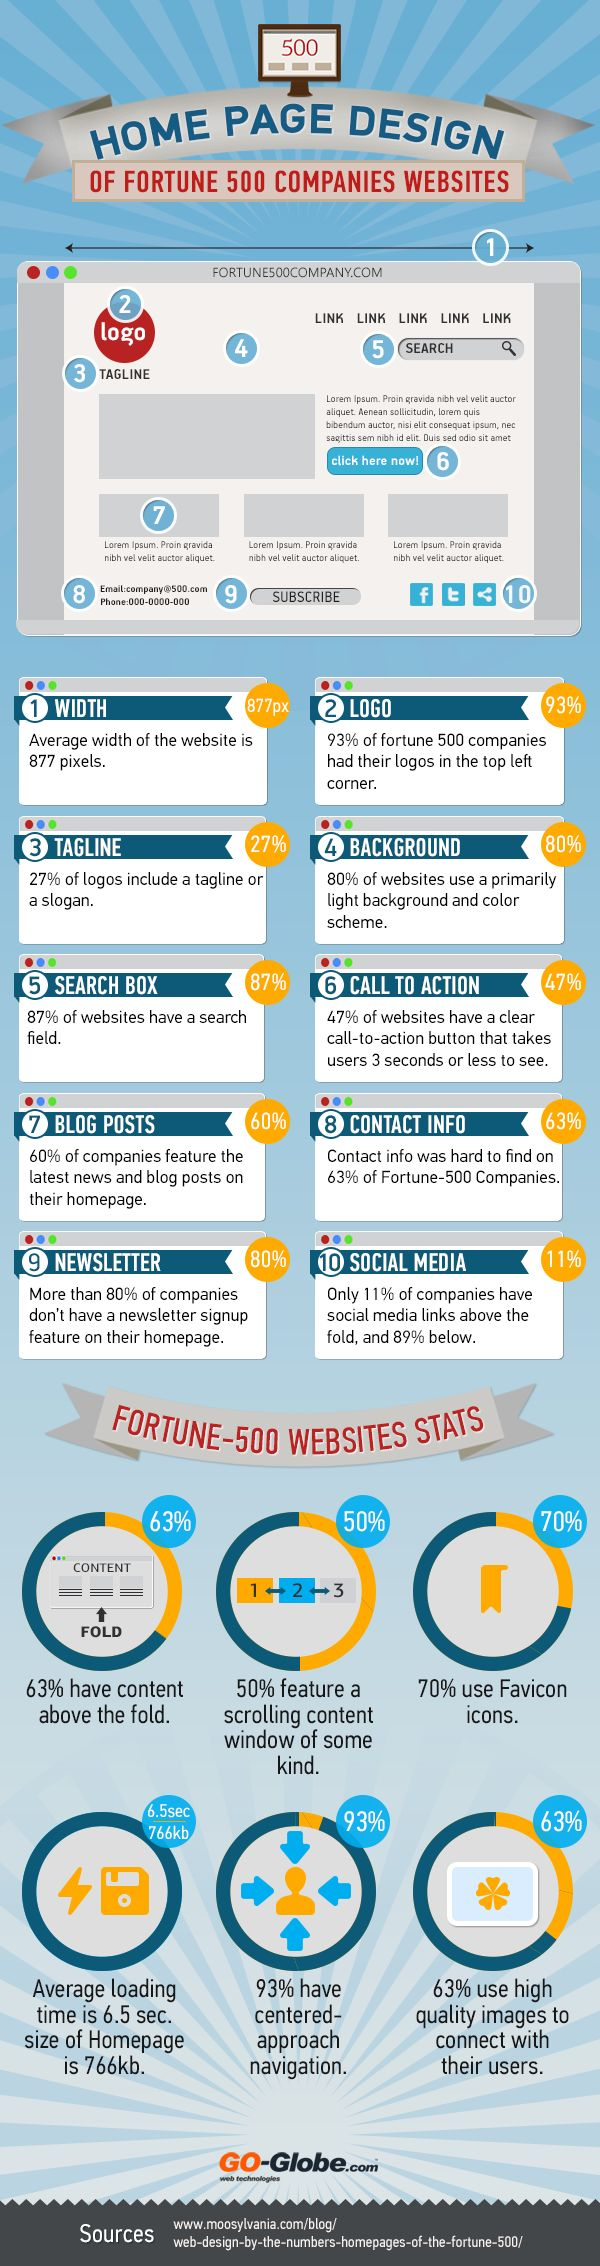 Web design : Home Page Design of Fortune 500 Companies Websites [Infographic]